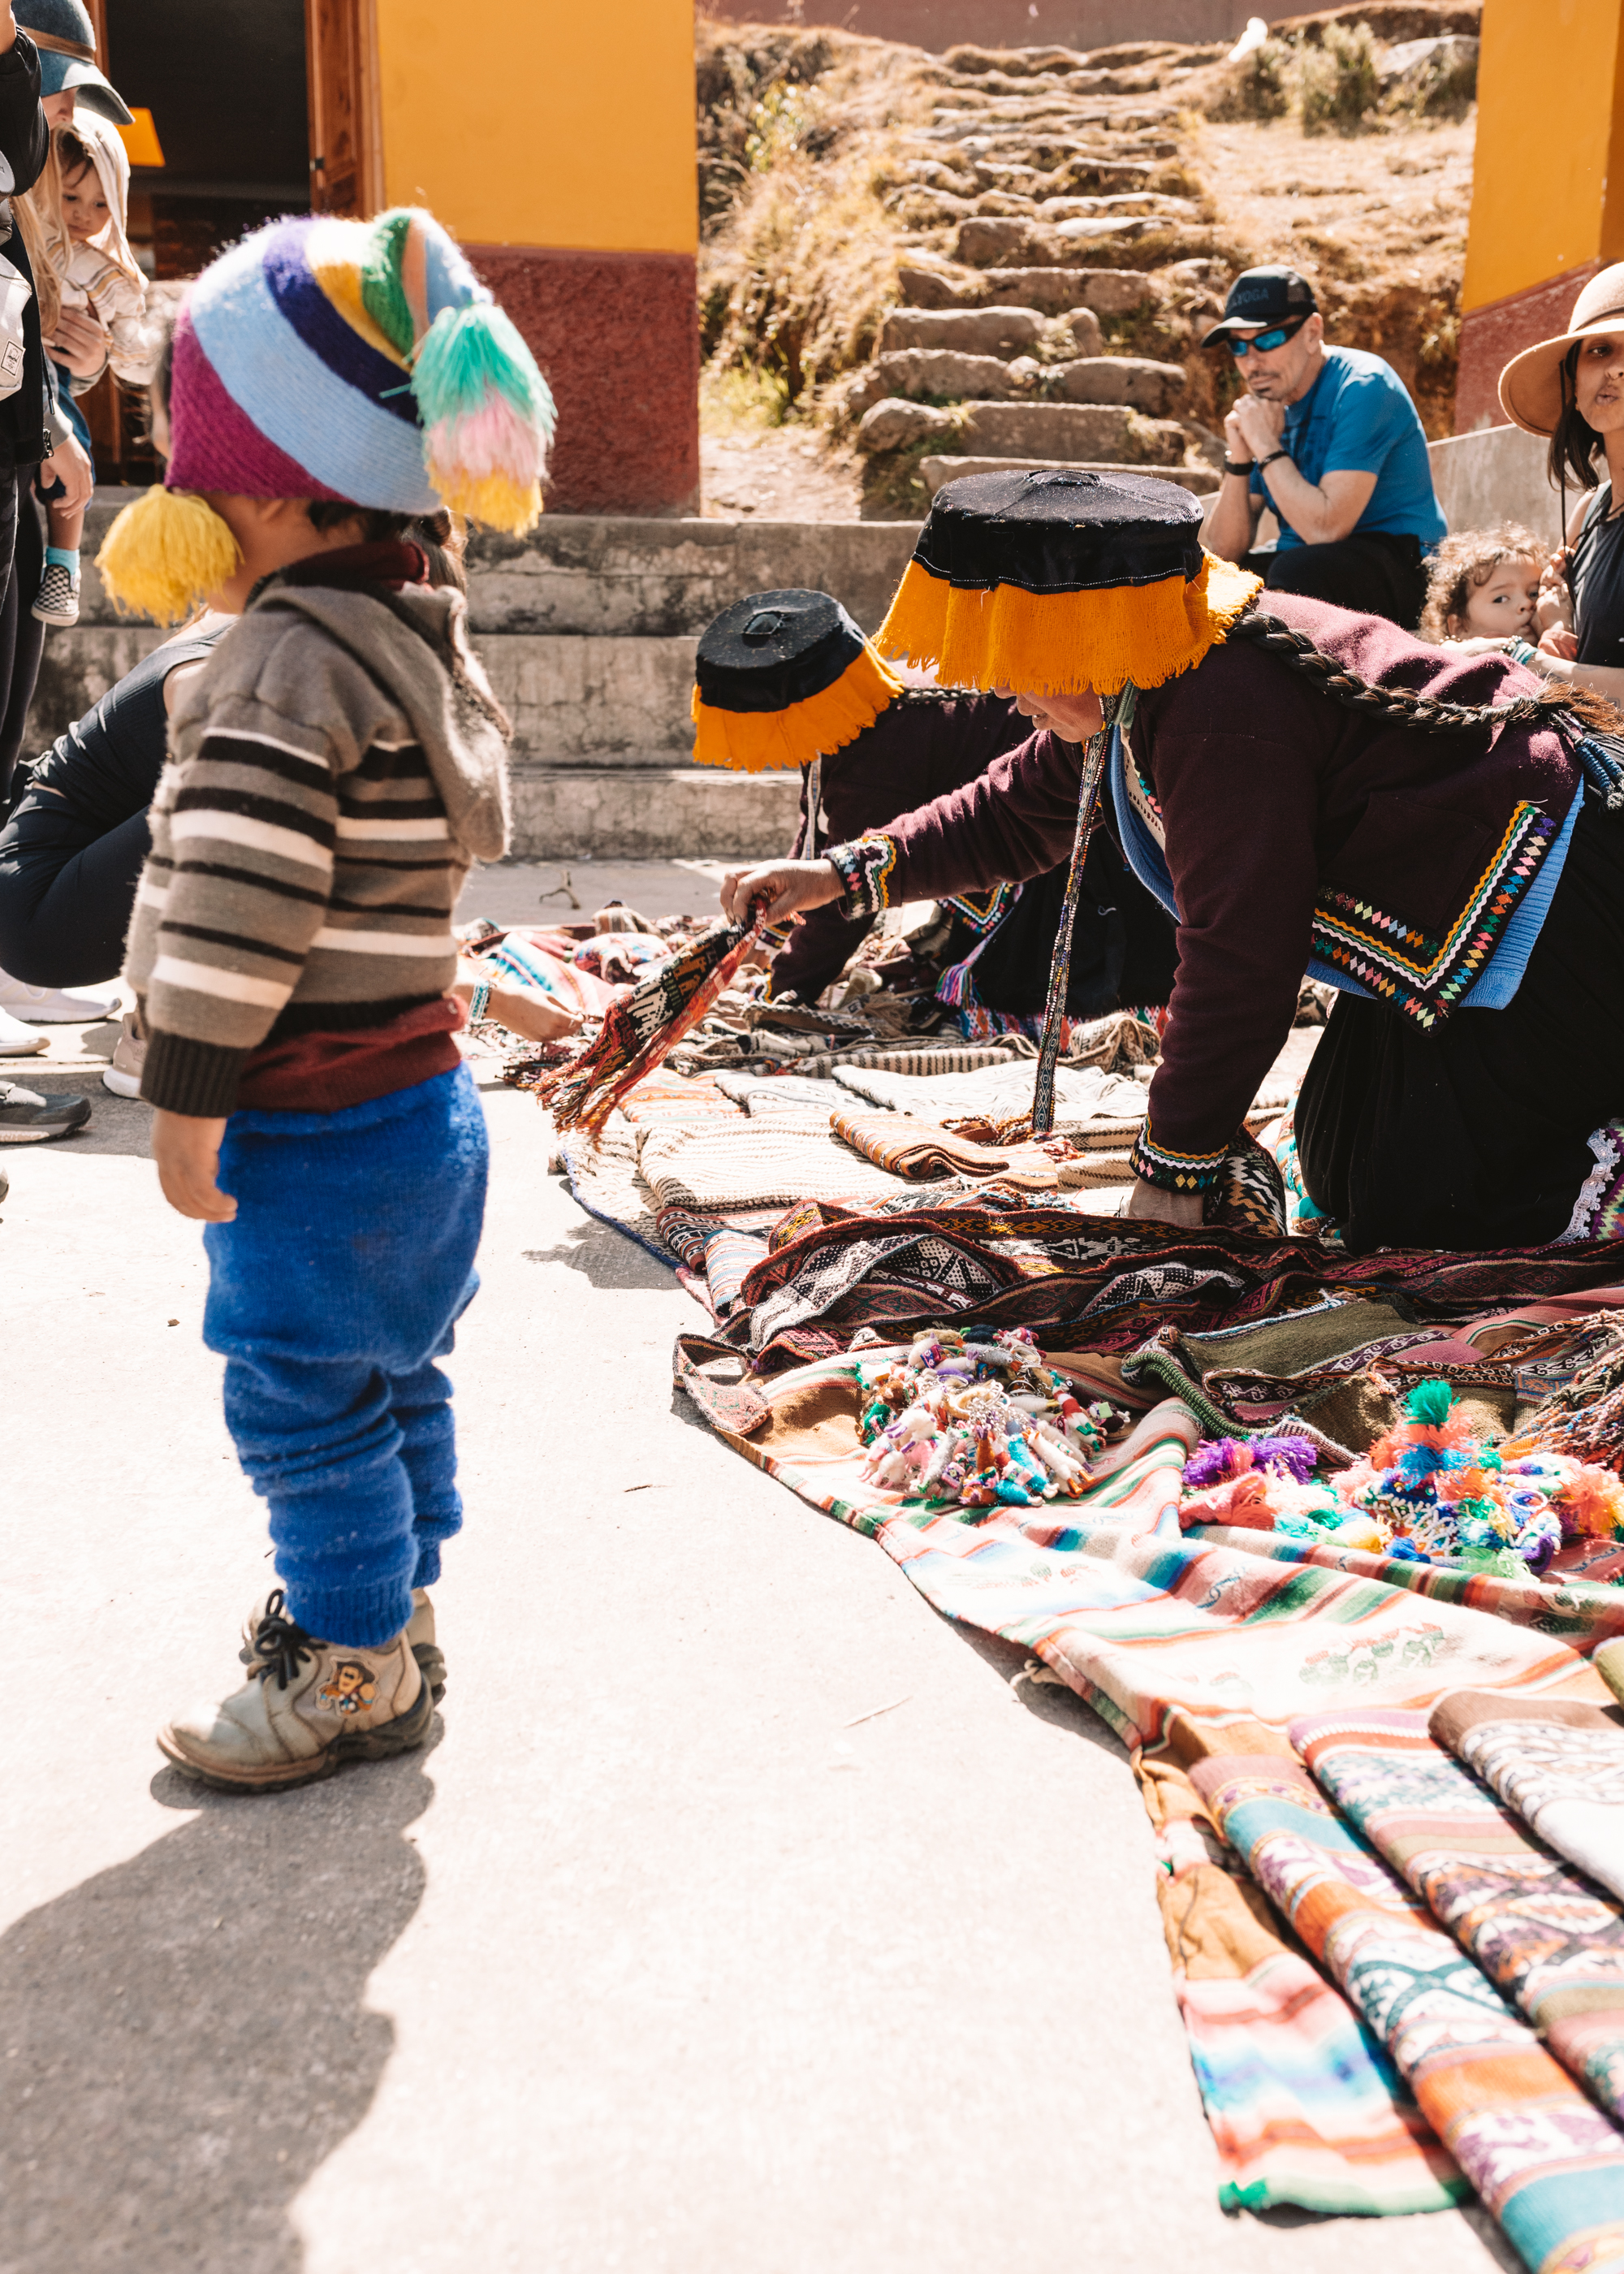 women laying out their wares to sell, while a sweet little toddler boy looks on. #peru #magicaljourney #travel